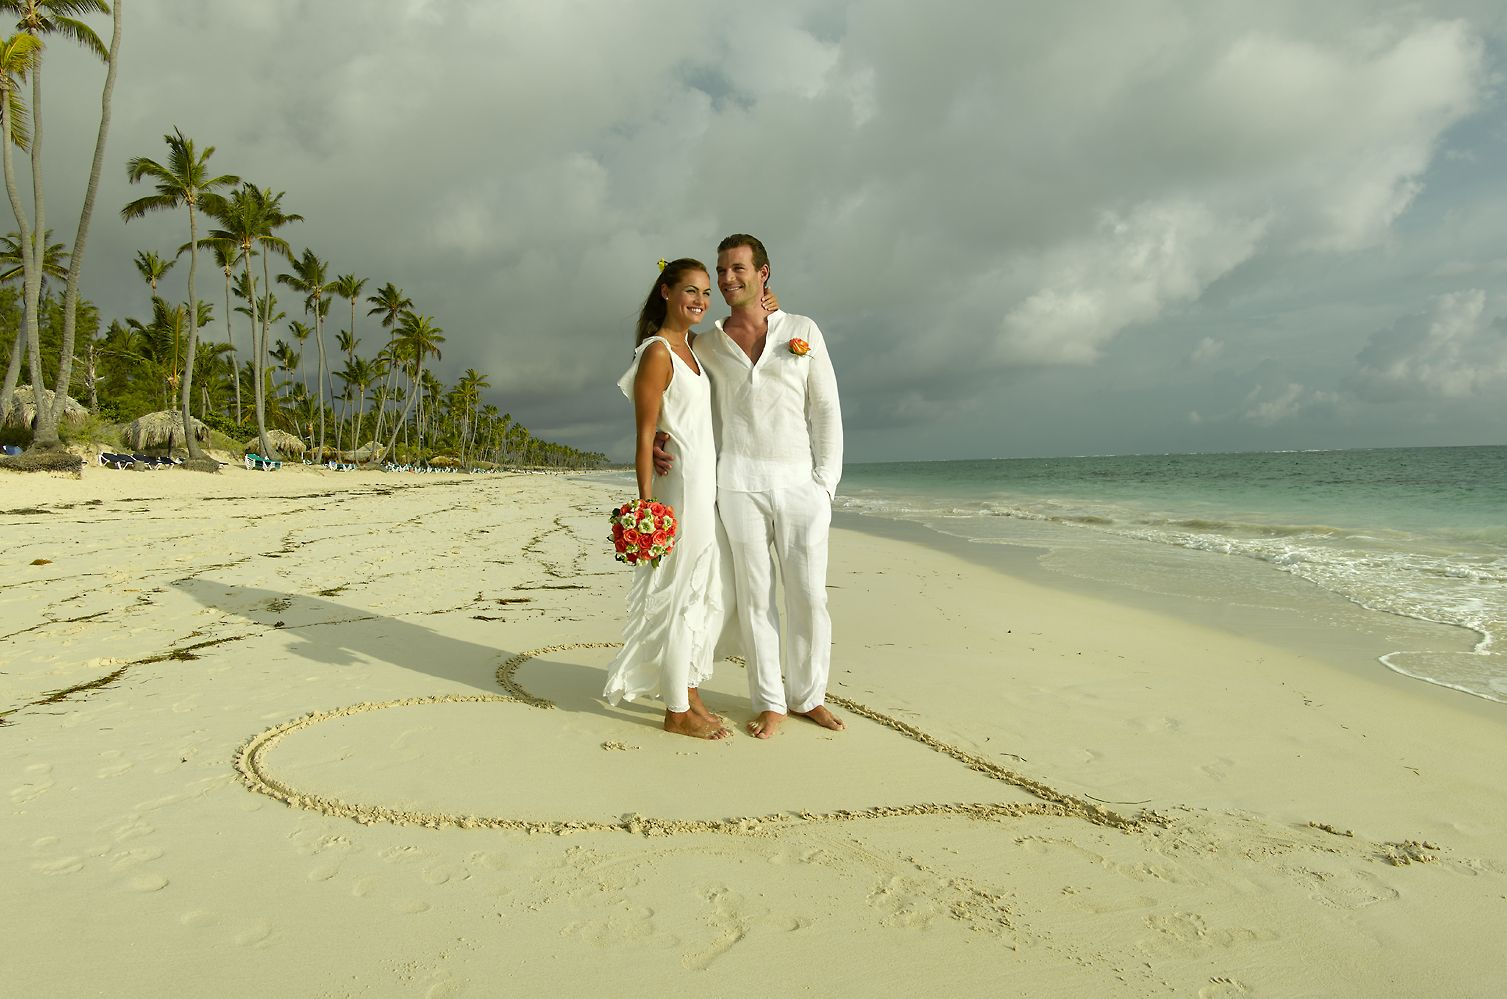 Celebra tu boda con nosotros en PuntaCana/Celebrate your wedding with us Punta Cana